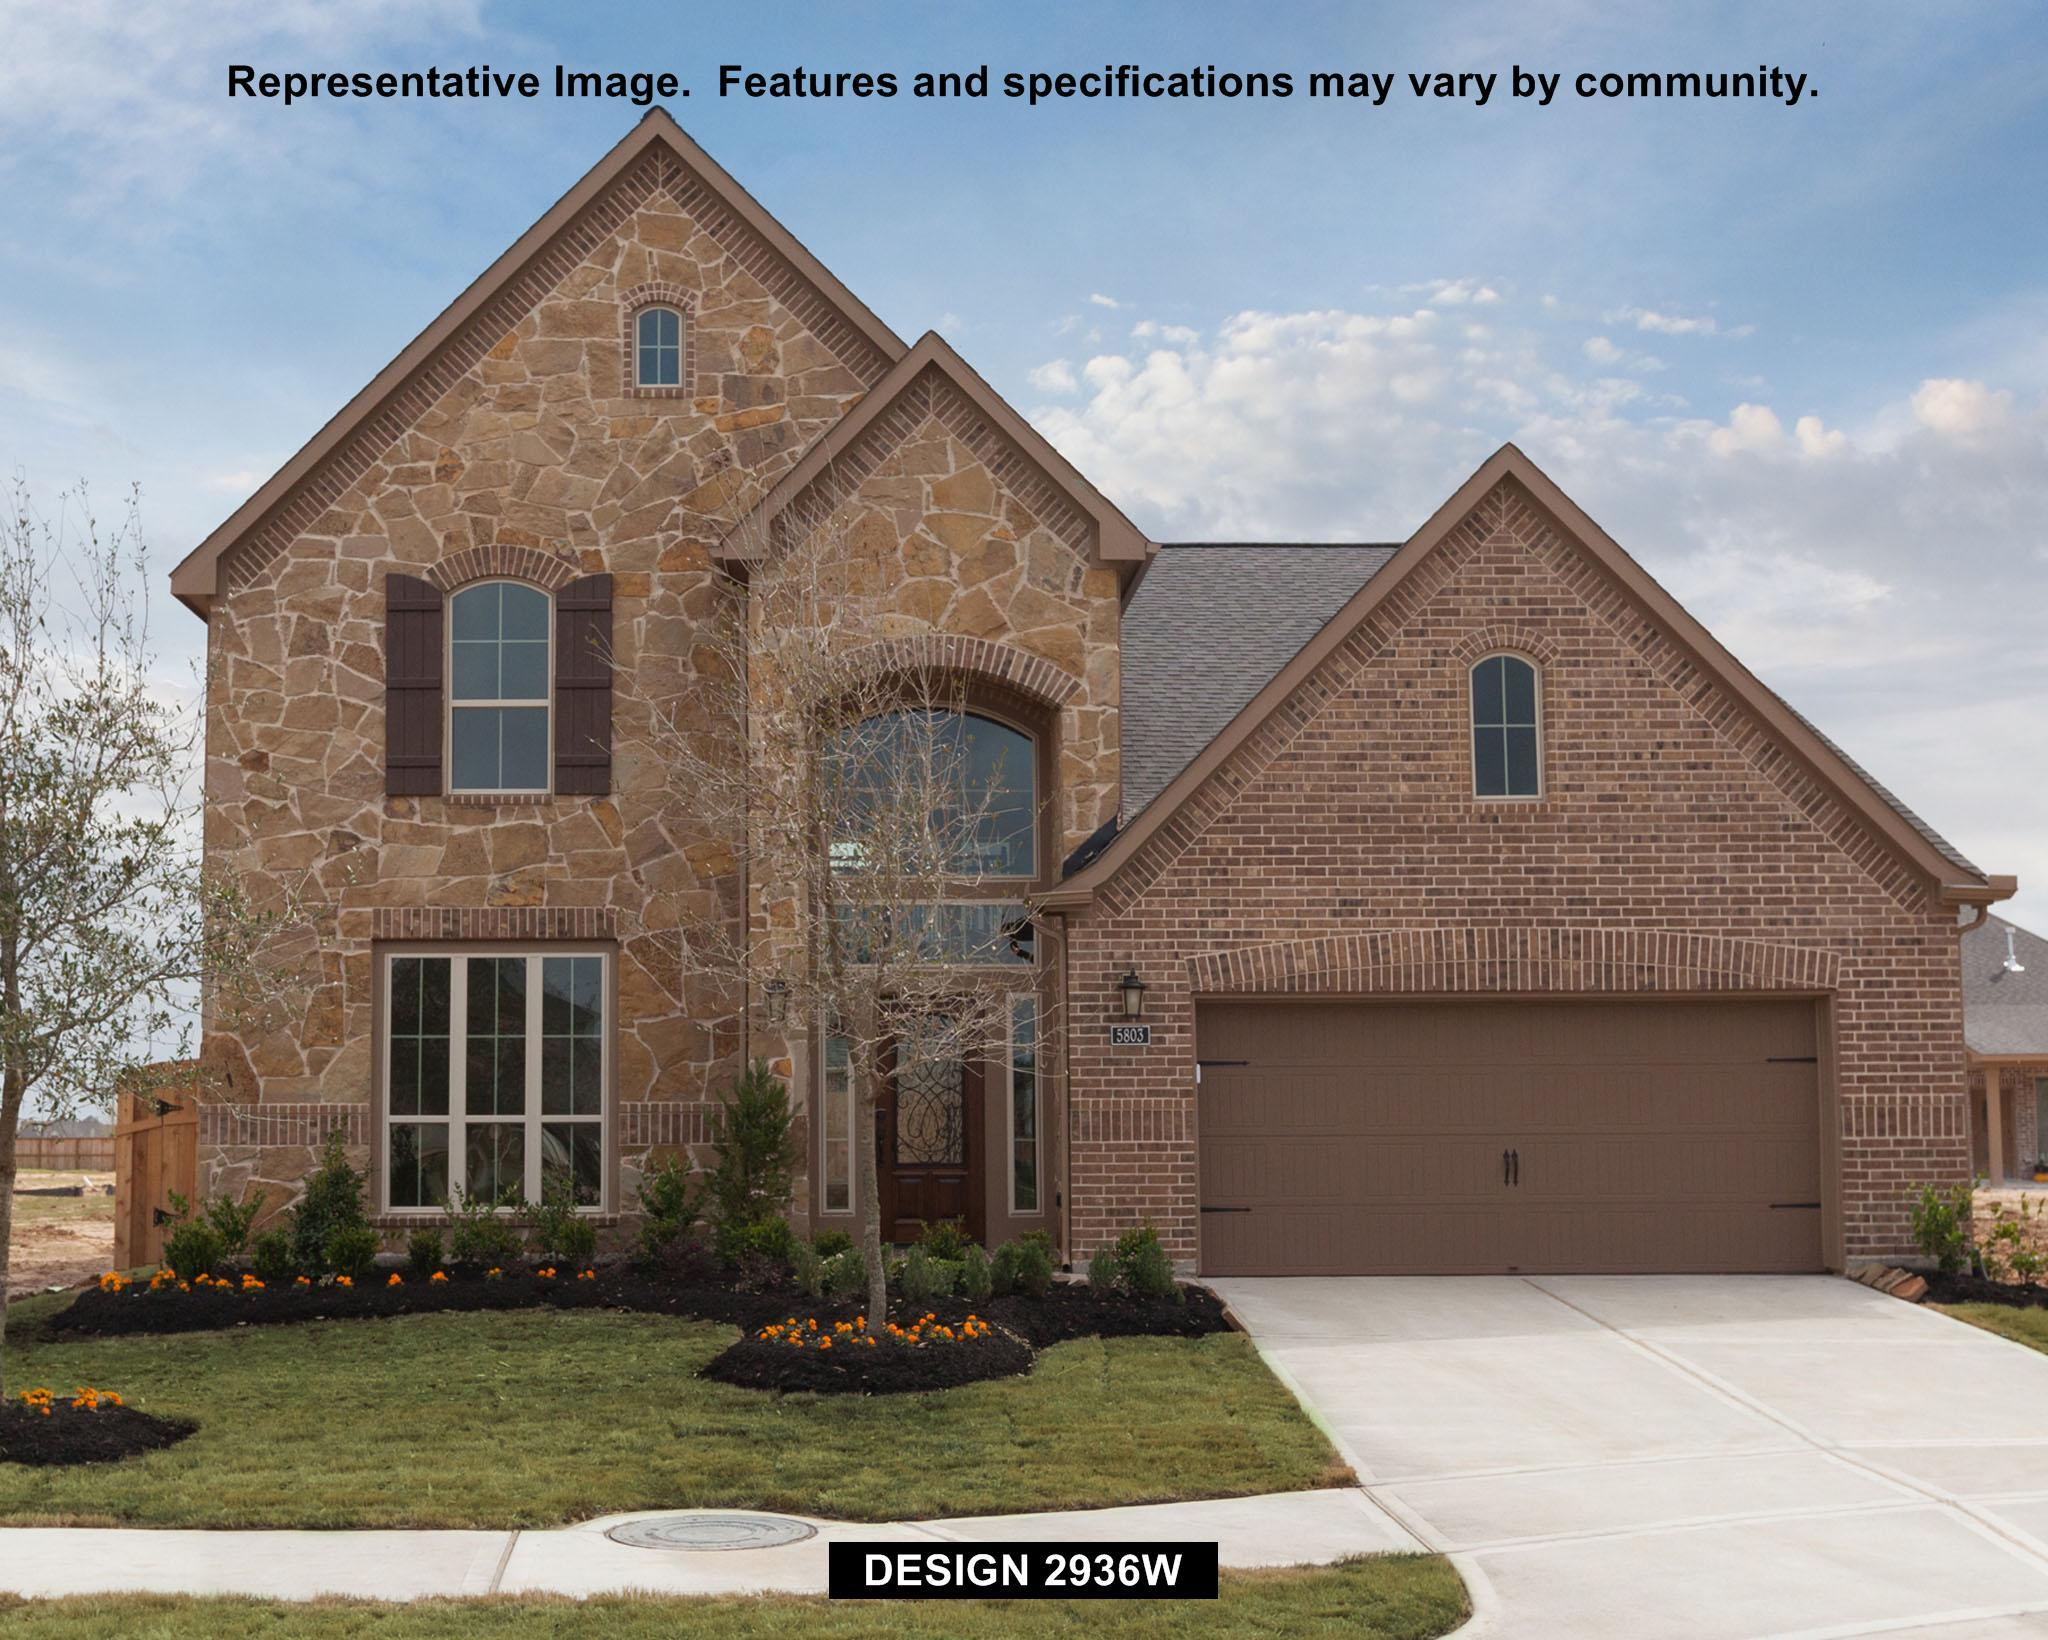 2936W - Aliana: Aliana 55': Richmond, TX - Perry Homes